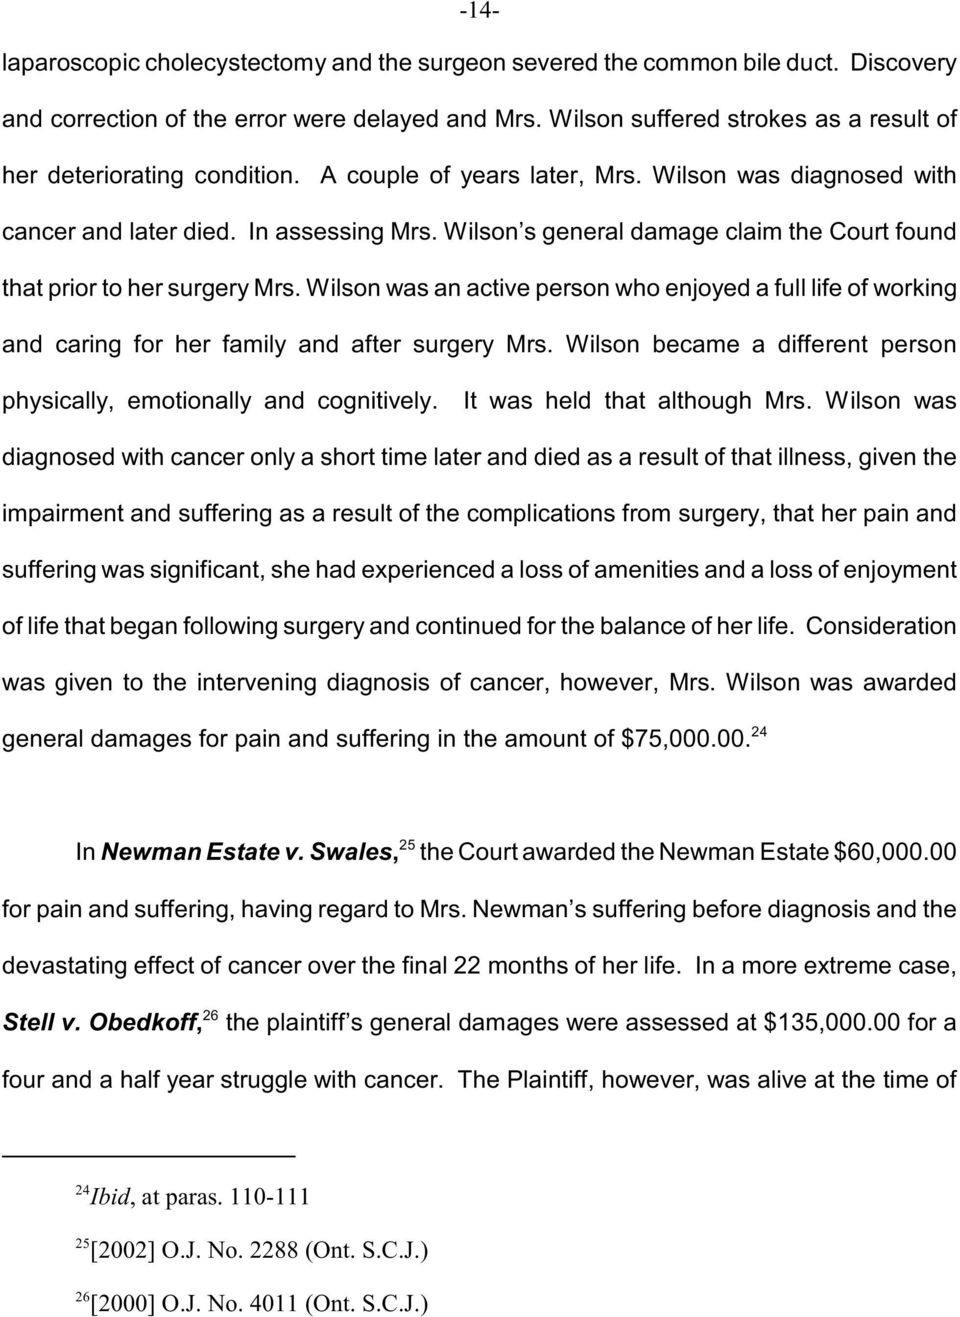 Wilson s general damage claim the Court found that prior to her surgery Mrs. Wilson was an active person who enjoyed a full life of working and caring for her family and after surgery Mrs.